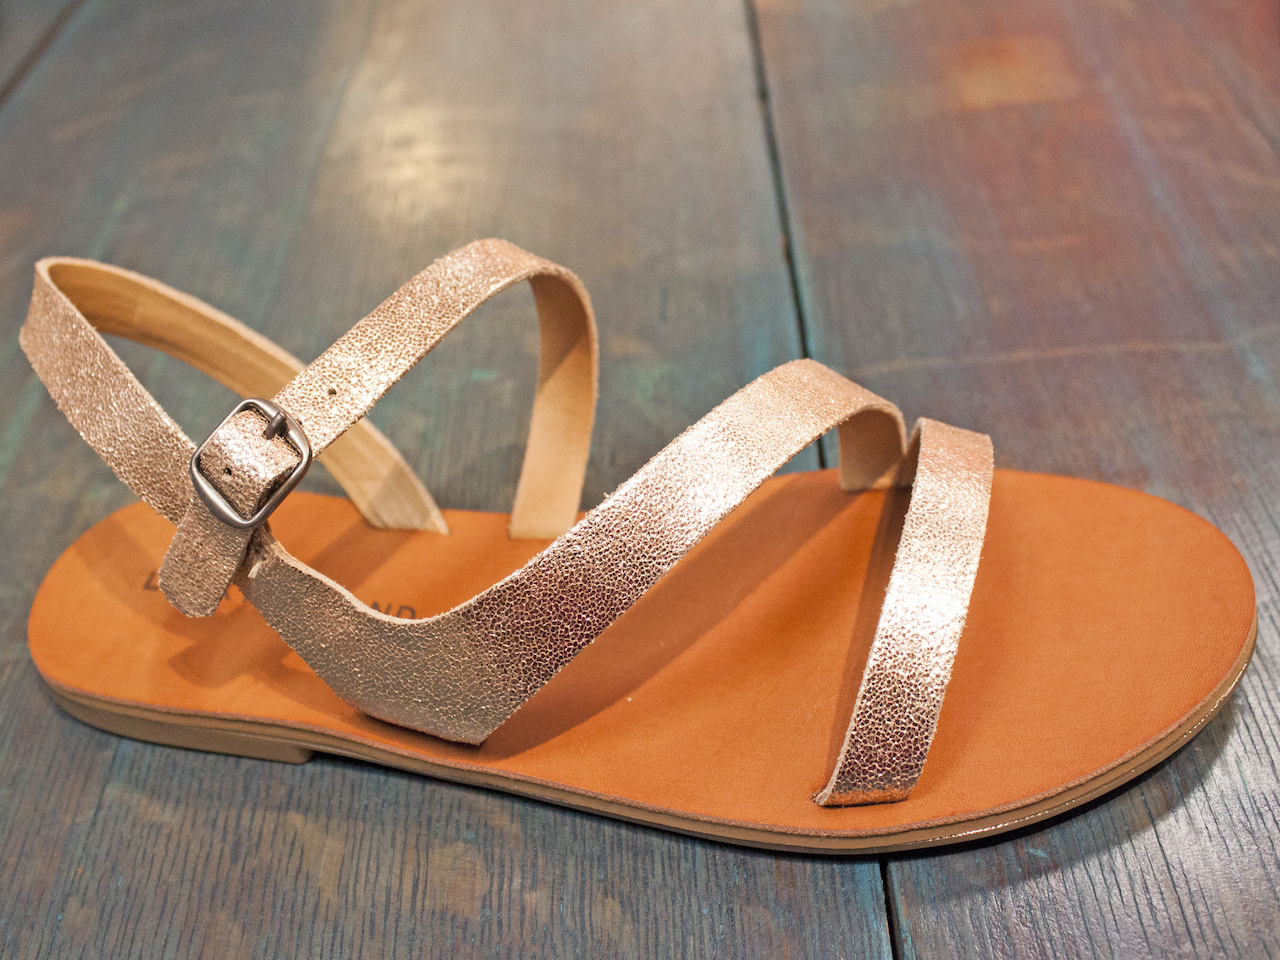 Classic and cute Lucky Brand sandals with a hint of shimmer are also available in brown and black. $62, at Sachi.